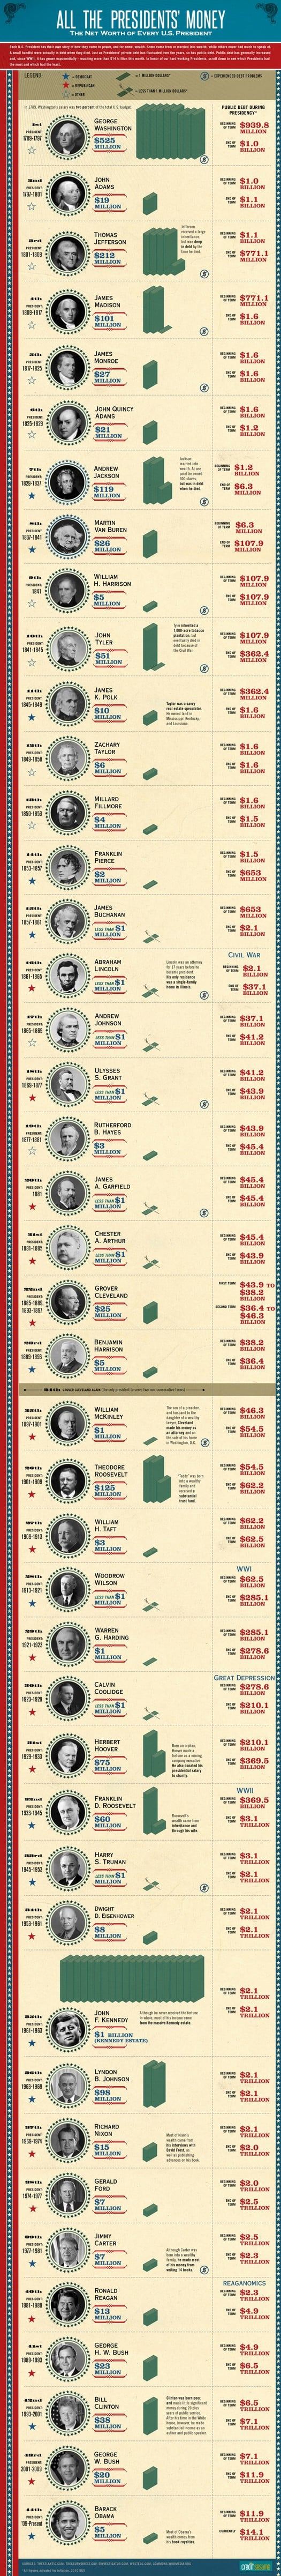 NETWORTH american presidents